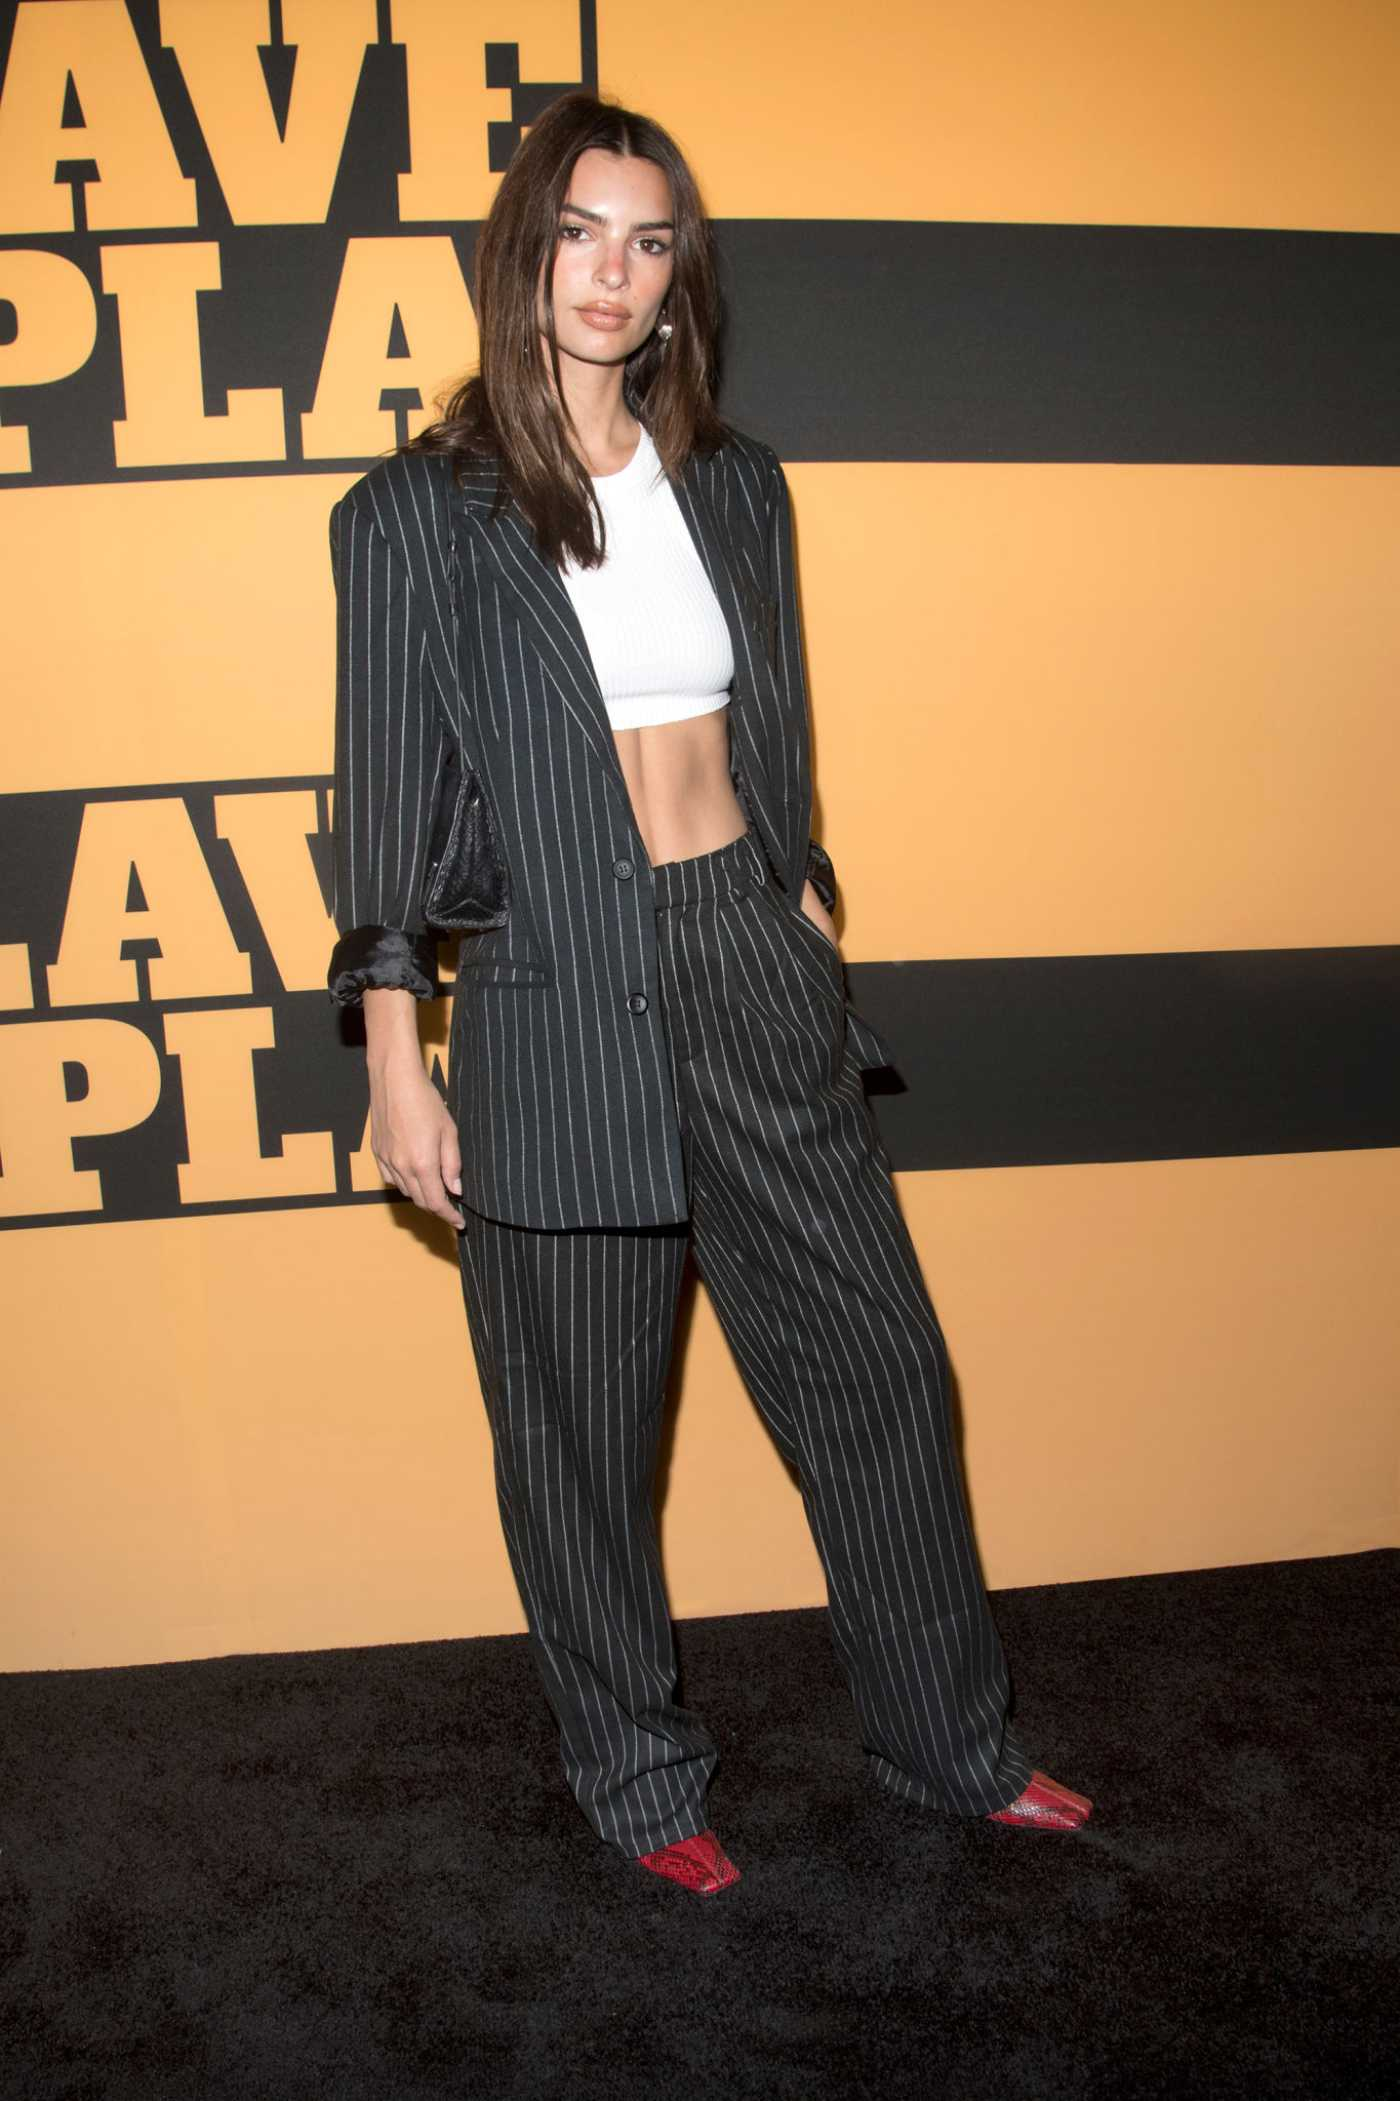 Emily Ratajkowski Attends Opening Night of Slave Play at the Golden Theatre in New York 10/06/2019